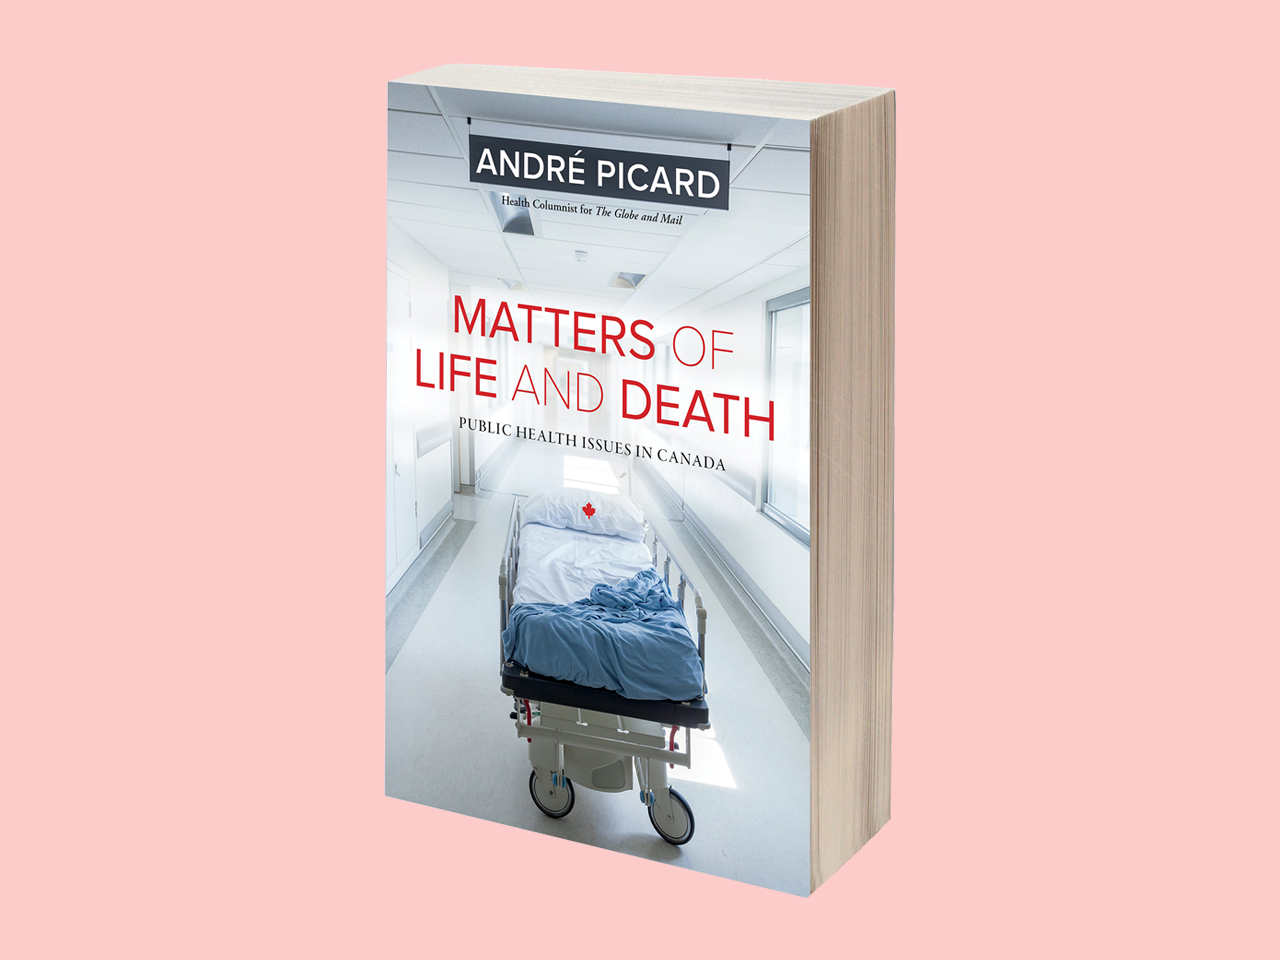 Matters of Life and Death: Public Heath Issues in Canada by André Picard, $23.